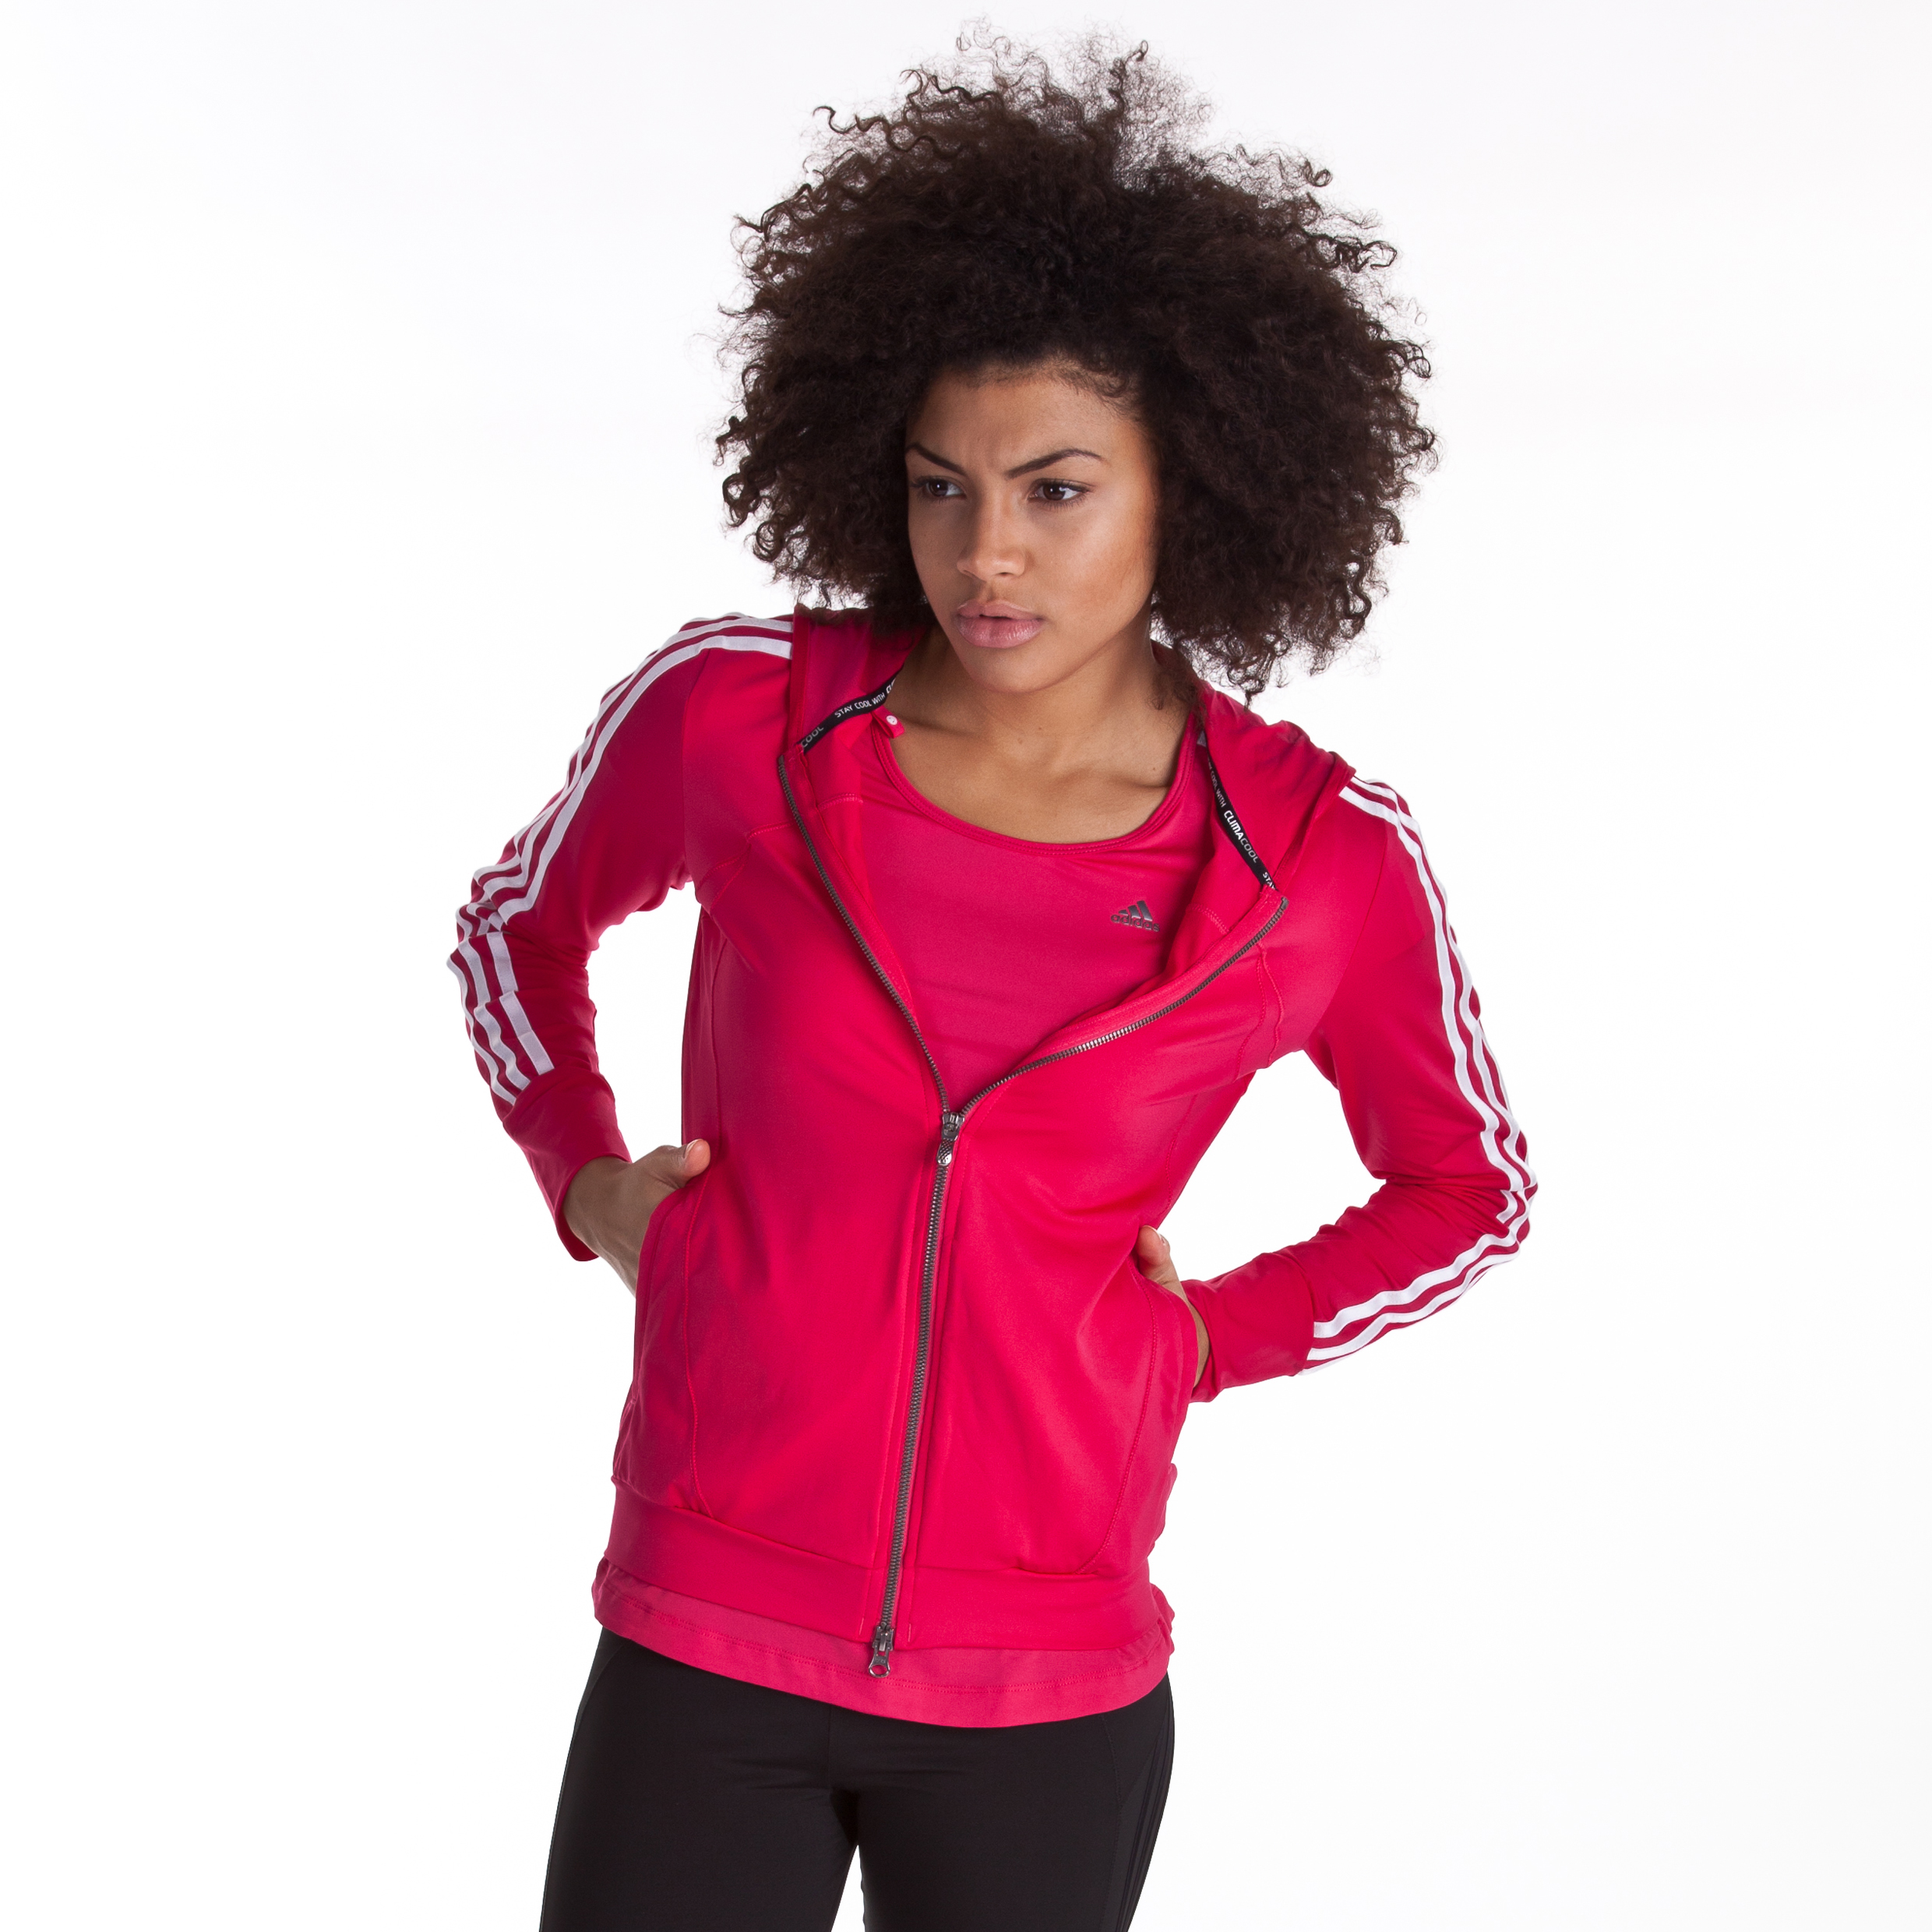 Adidas CLIMACOOL Training Core Hooded Track Top - Bright Pink - Womens